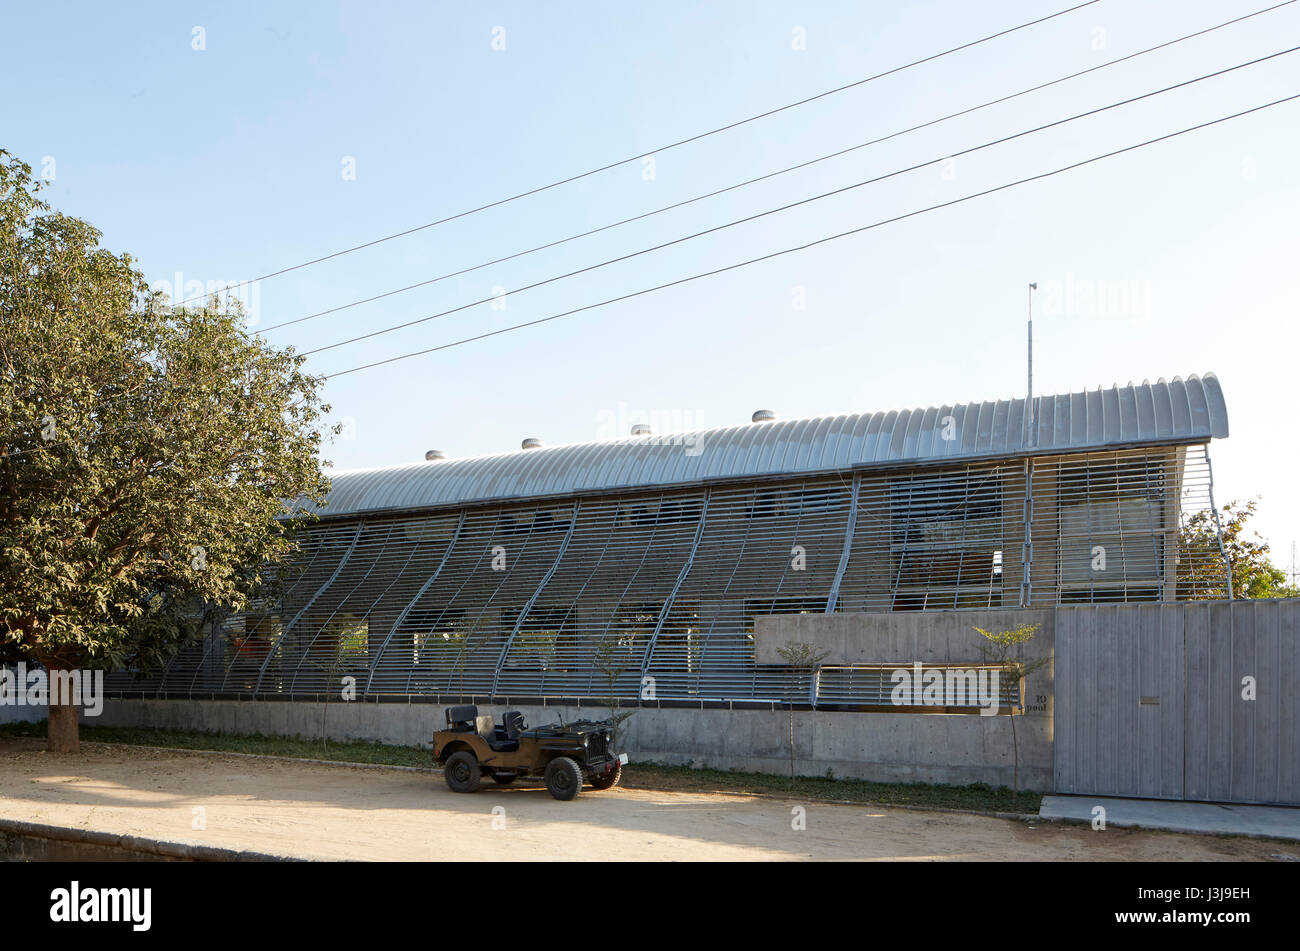 Street side exterior view with jeep. The Pool Studio of Matharoo Associates, Ahmedabad, India. Architect: Matharoo - Stock Image